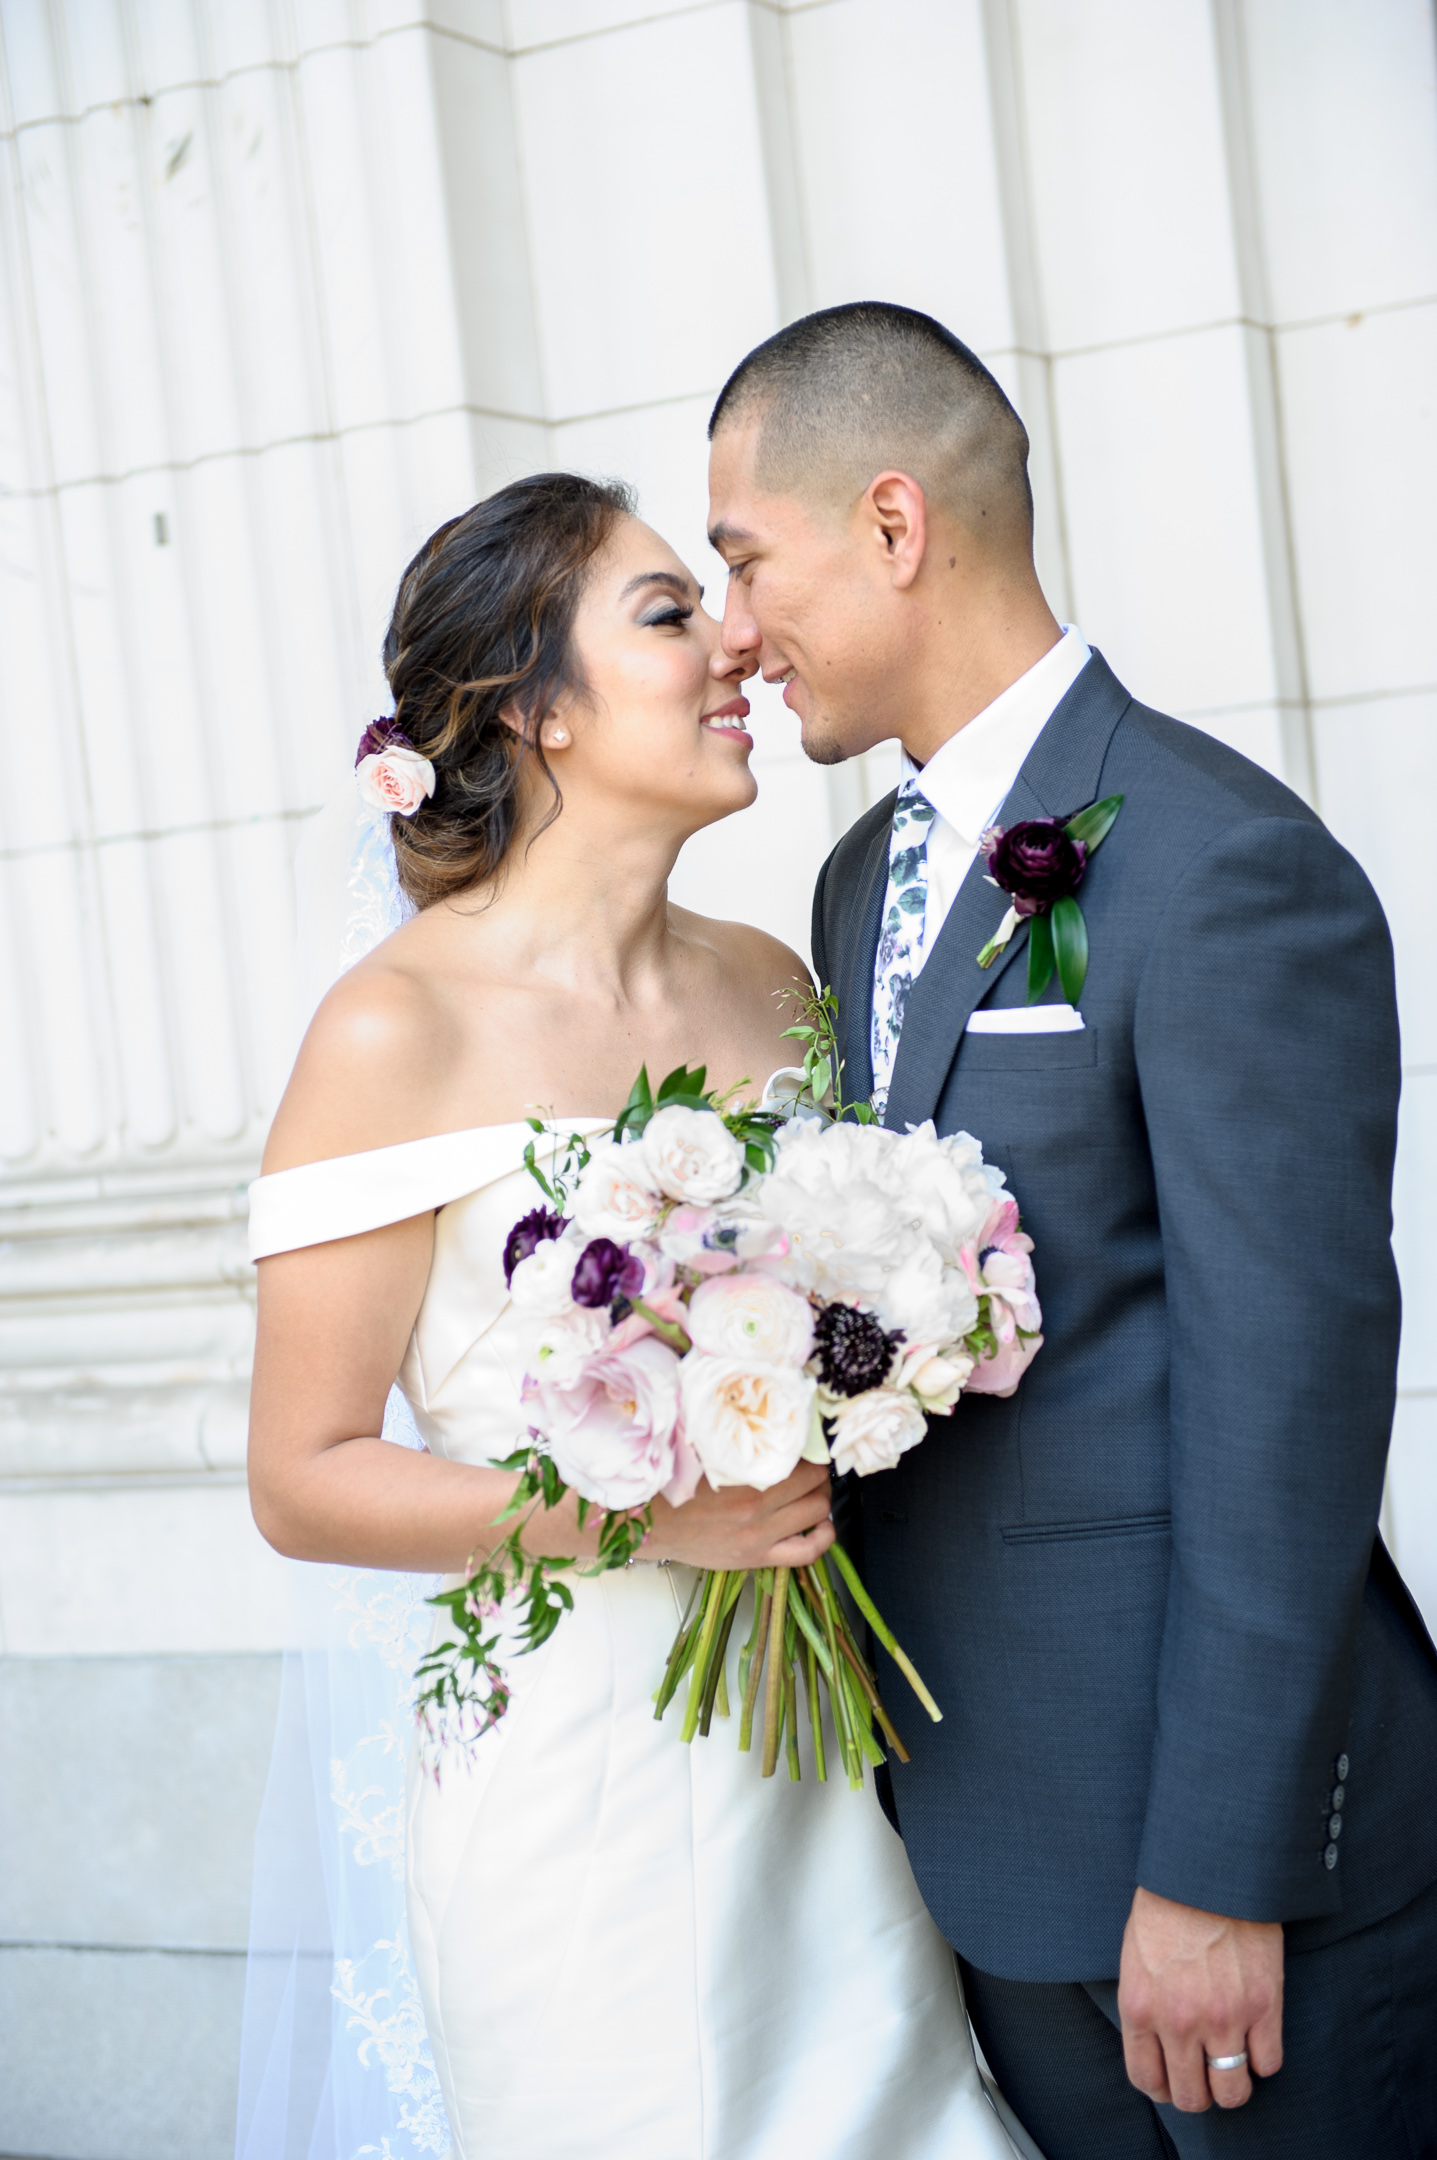 Diana + Francisco | Wedding